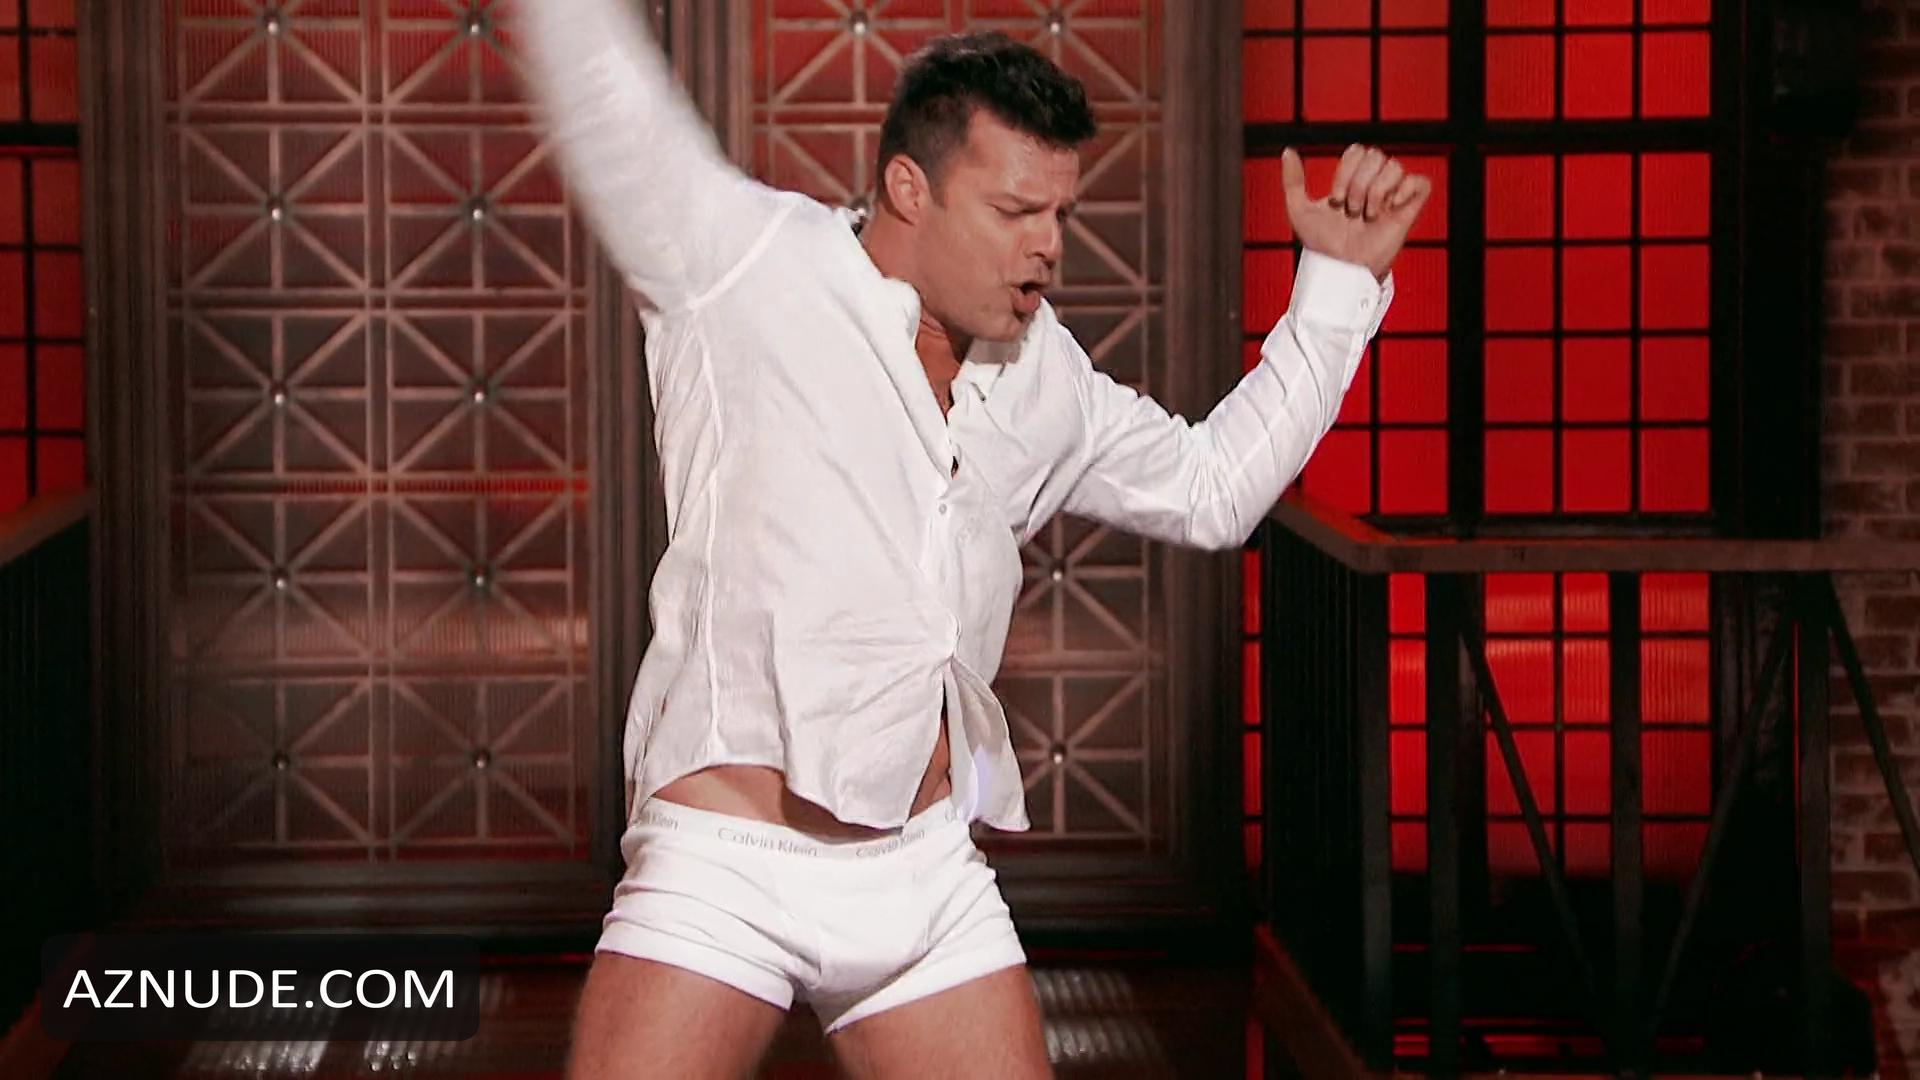 ricky martin nude photos